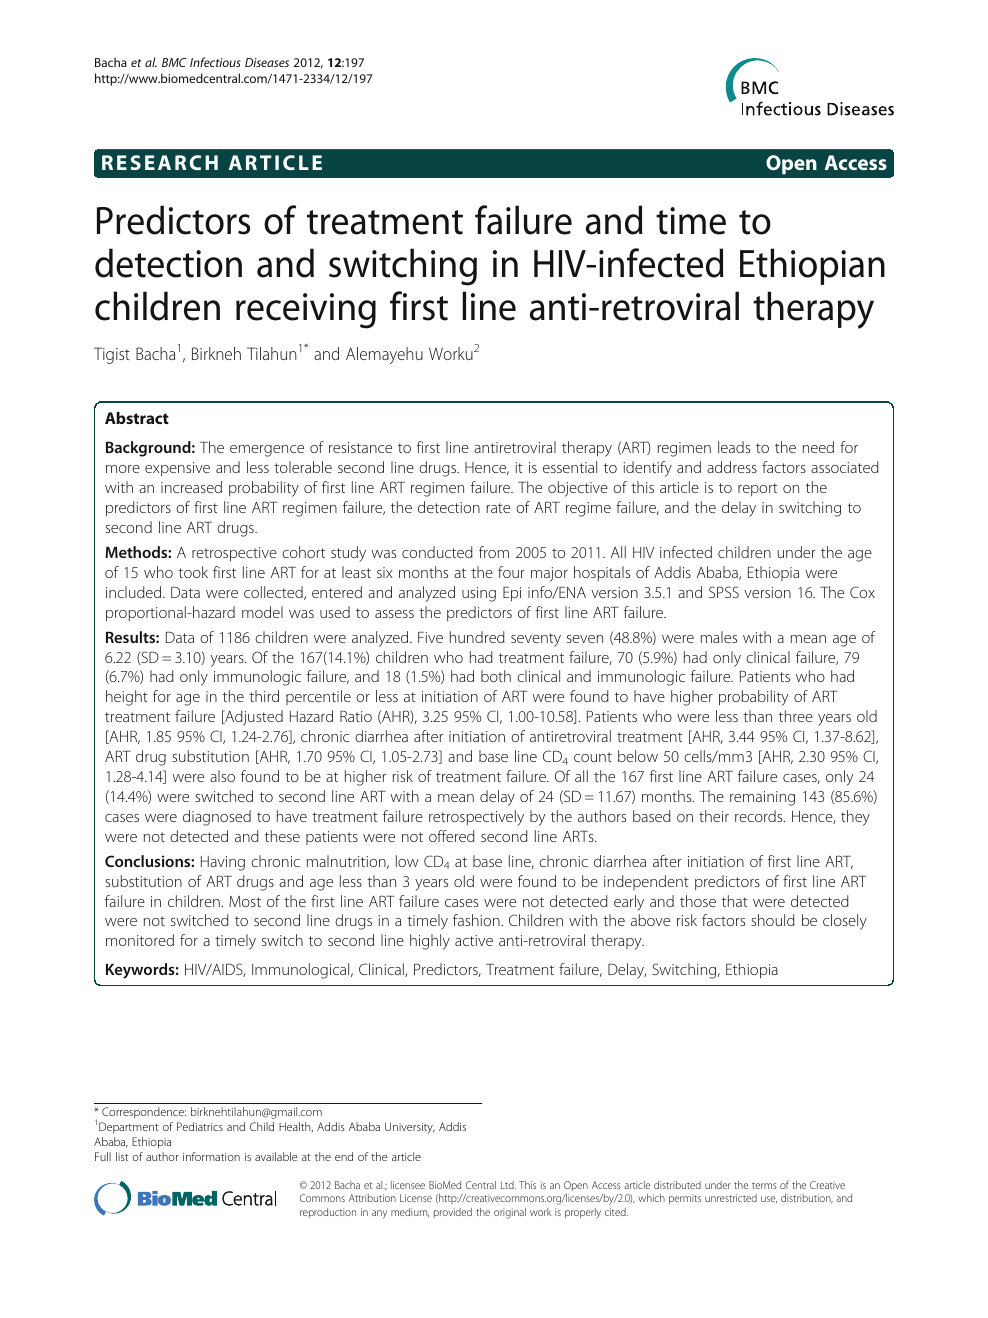 Predictors of treatment failure and time to detection and